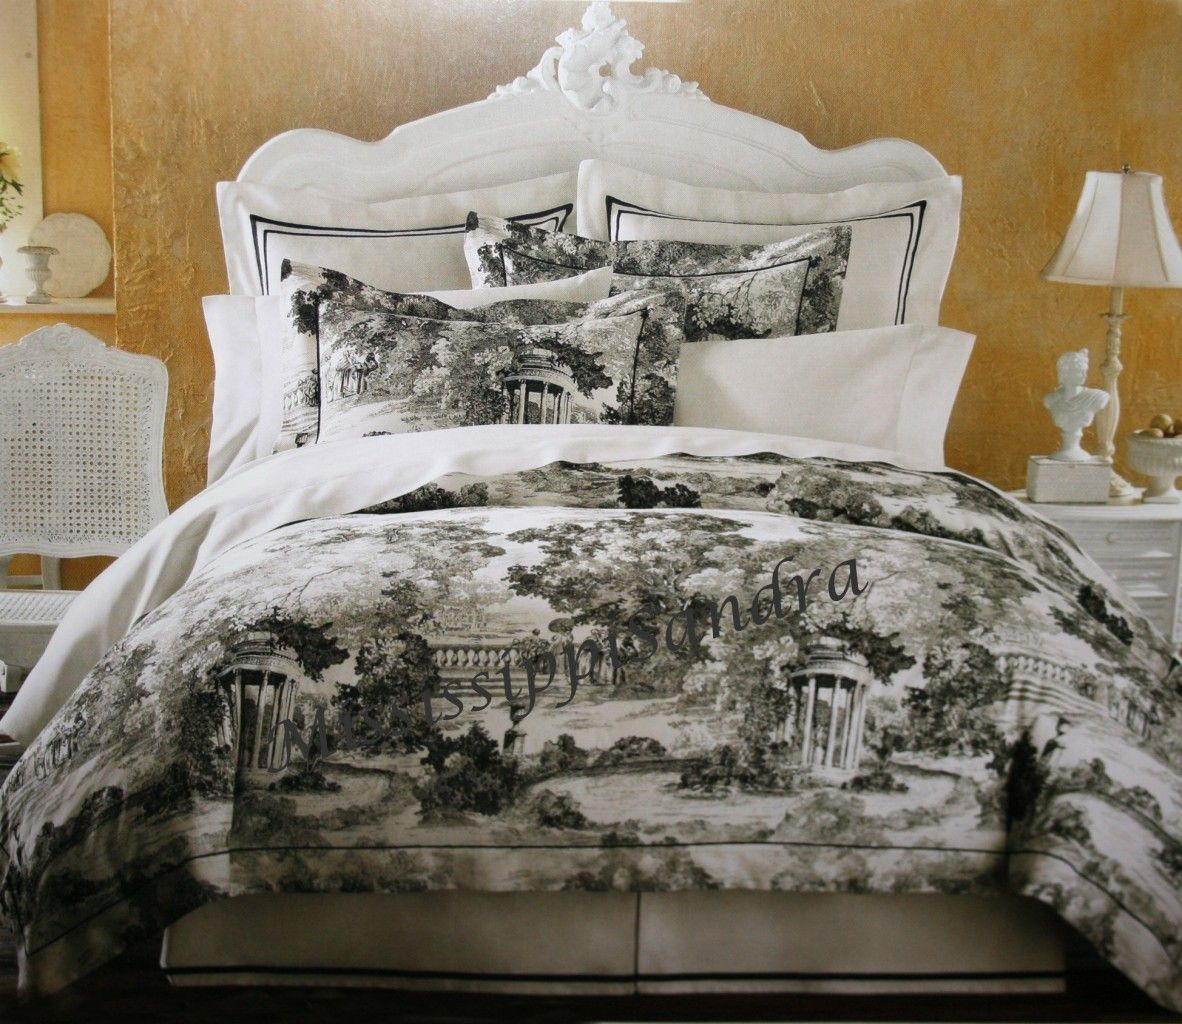 Black And White Toile Bedding Toile Bedding Comforter